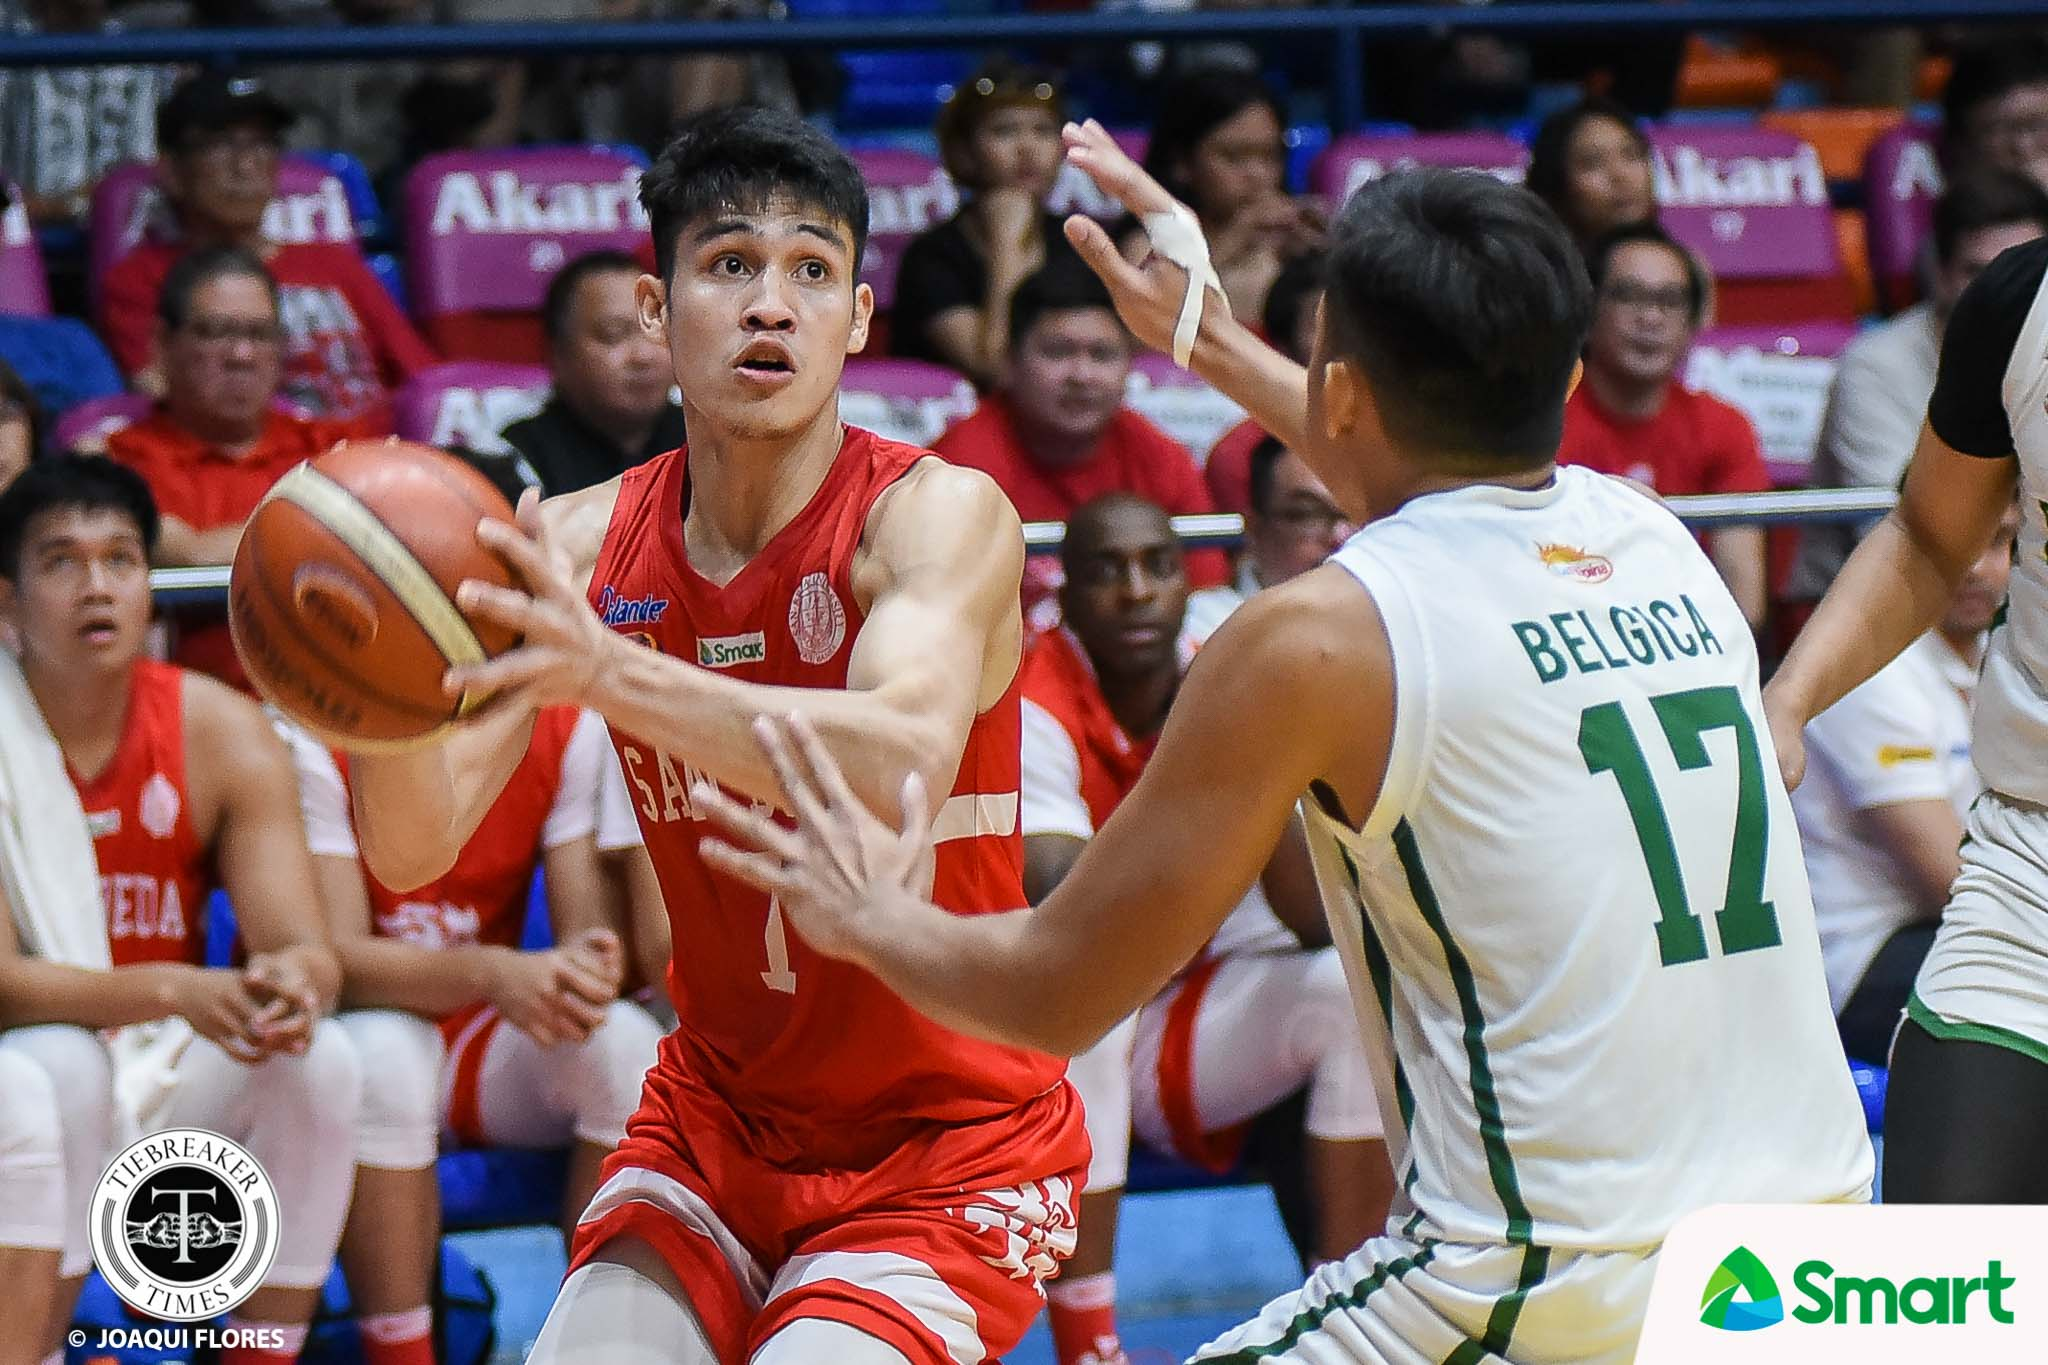 Tiebreaker Times Calvin Oftana leads romp of Benilde as San Beda one away from sweep Basketball CSB NCAA News SBC  TY Tang San Beda Seniors Basketball NCAA Season 95 Seniors Basketball NCAA Season 95 Justin Gutang James Canlas Evan Nelle Donald Tankoua Calvin Oftana Boyet Fernandez